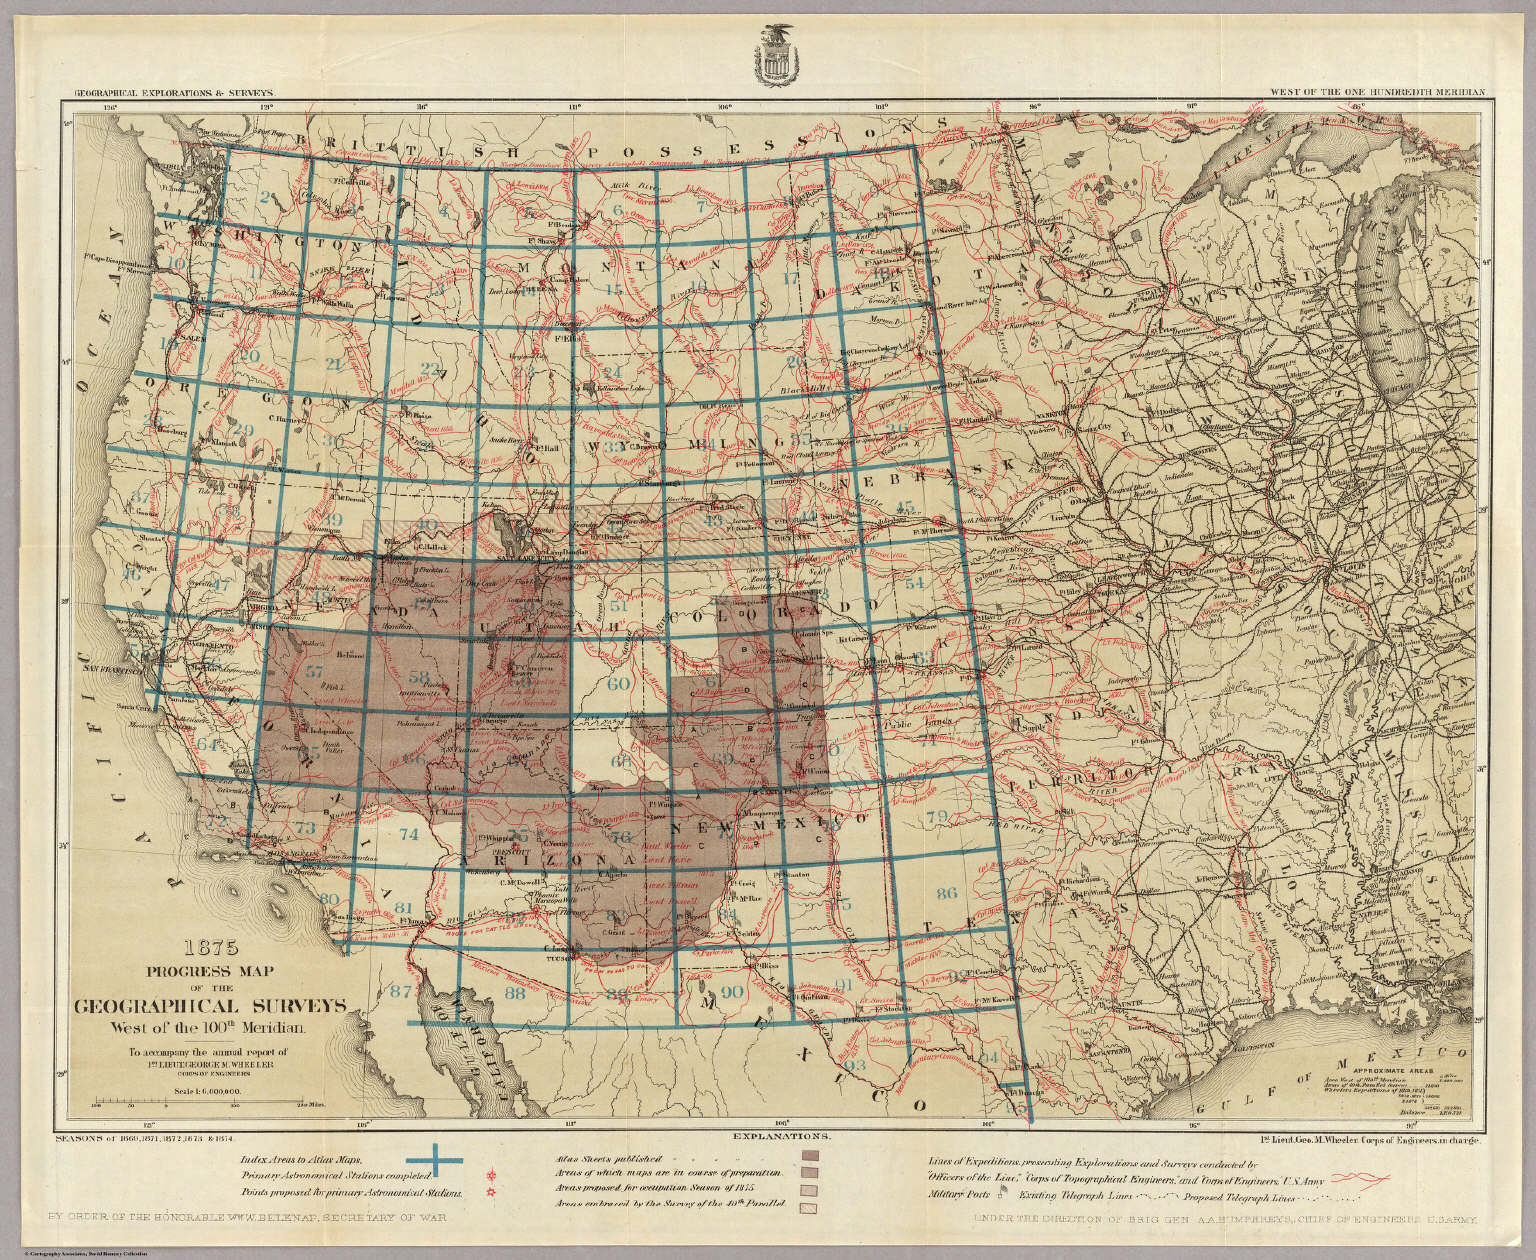 1875 progress map of the geographical surveys west of the 100th meridian